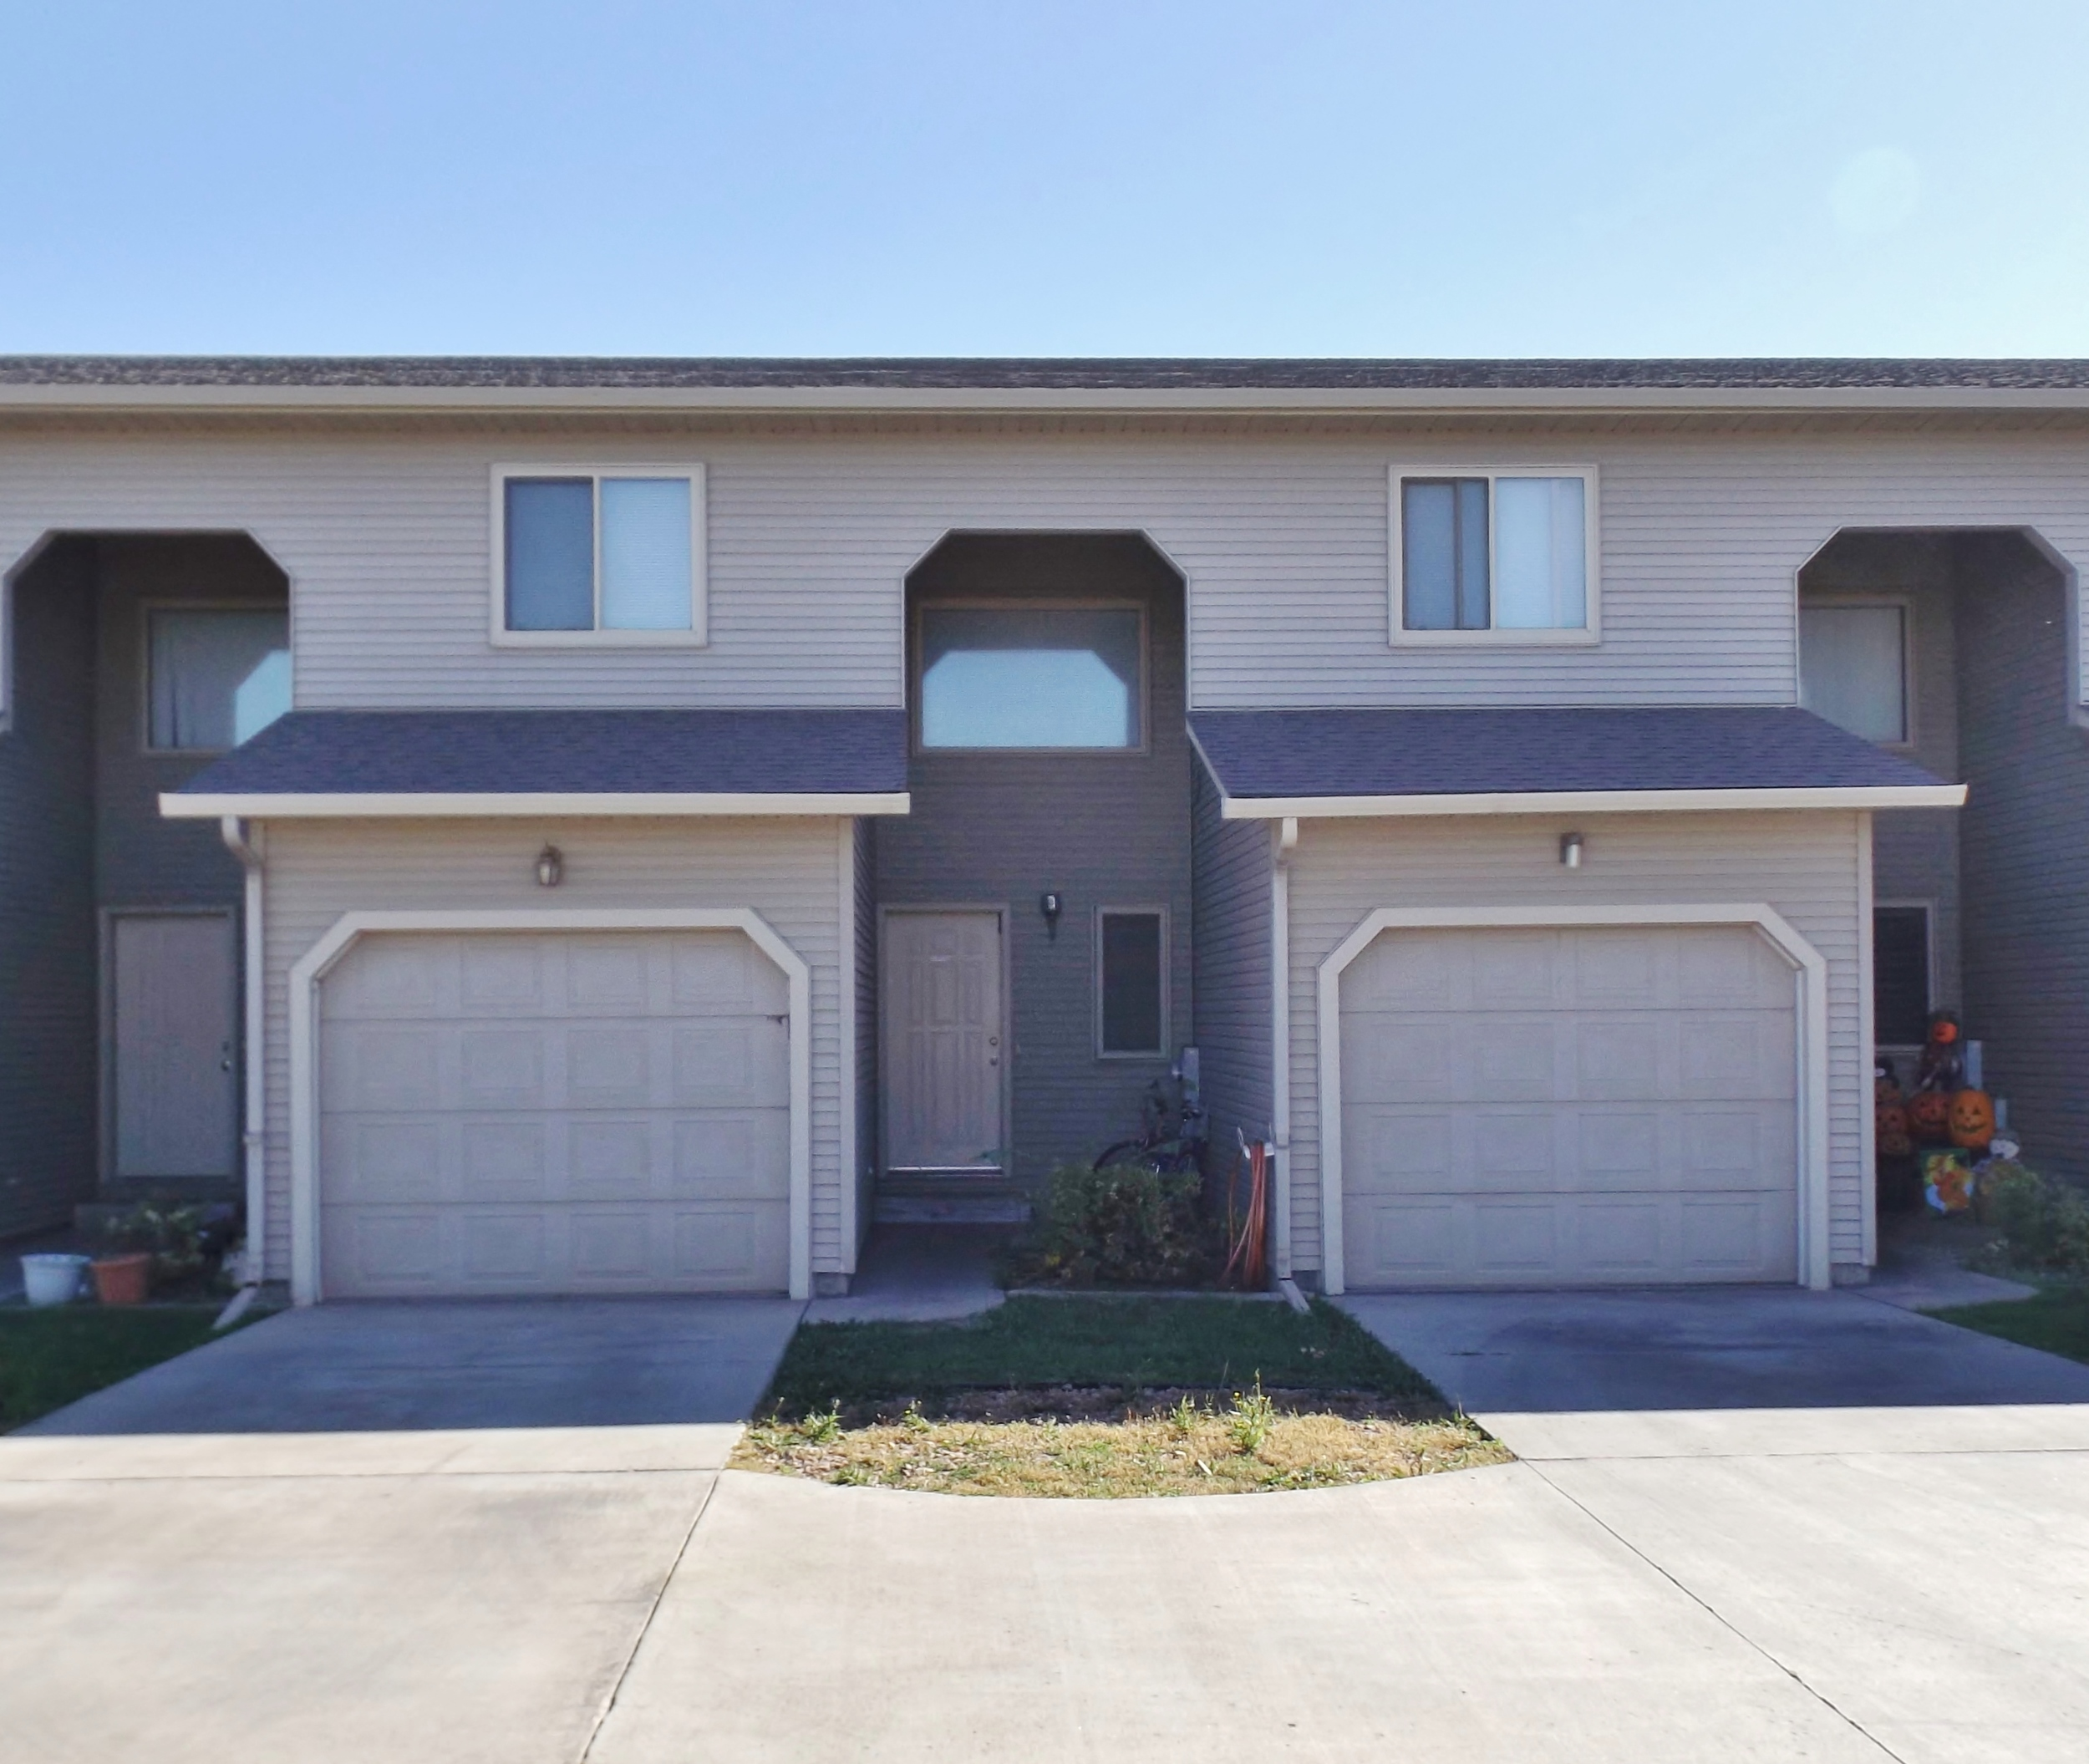 Federal Avenue Townhomes in Rapid City SD - attached garages